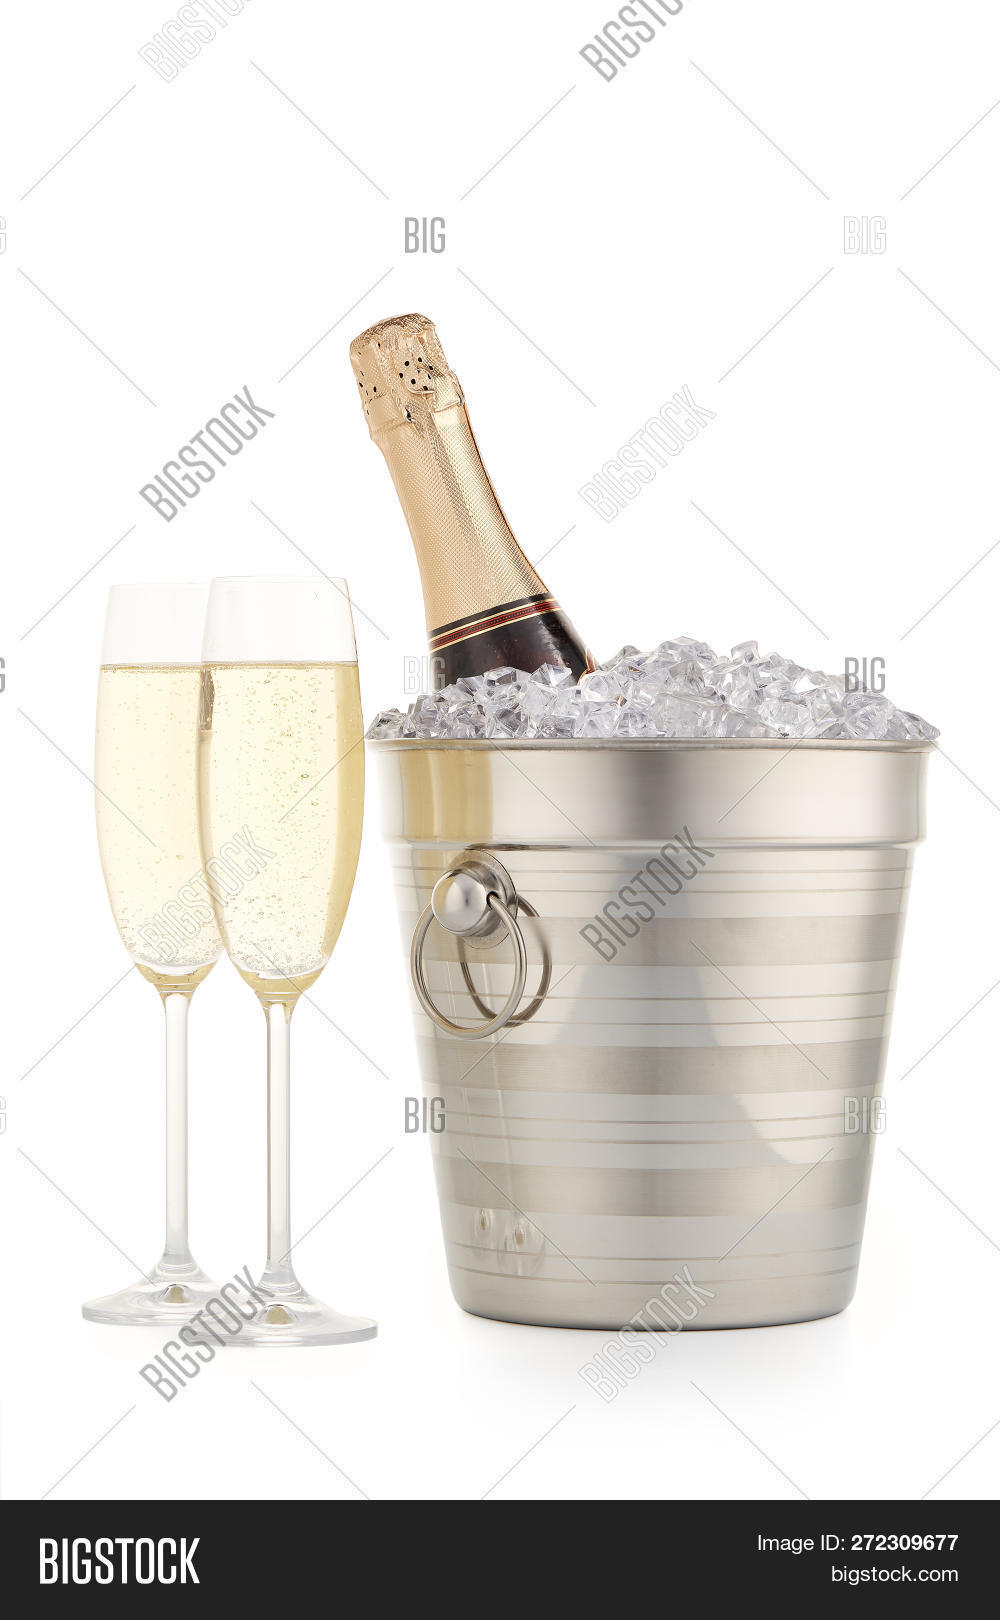 alcohol,anniversary,beverage,bottle,bucket,celebrating,celebration,champagne,champagne bottle,champagne flute,christmas,cold,congratulation,cool,cooling,drink,eve,event,festive,glass,gold,holiday,ice,isolated,metal,new year,nobody,party,pattern,silver,sparkling wine,still life,toast,white background,wine,wineglass